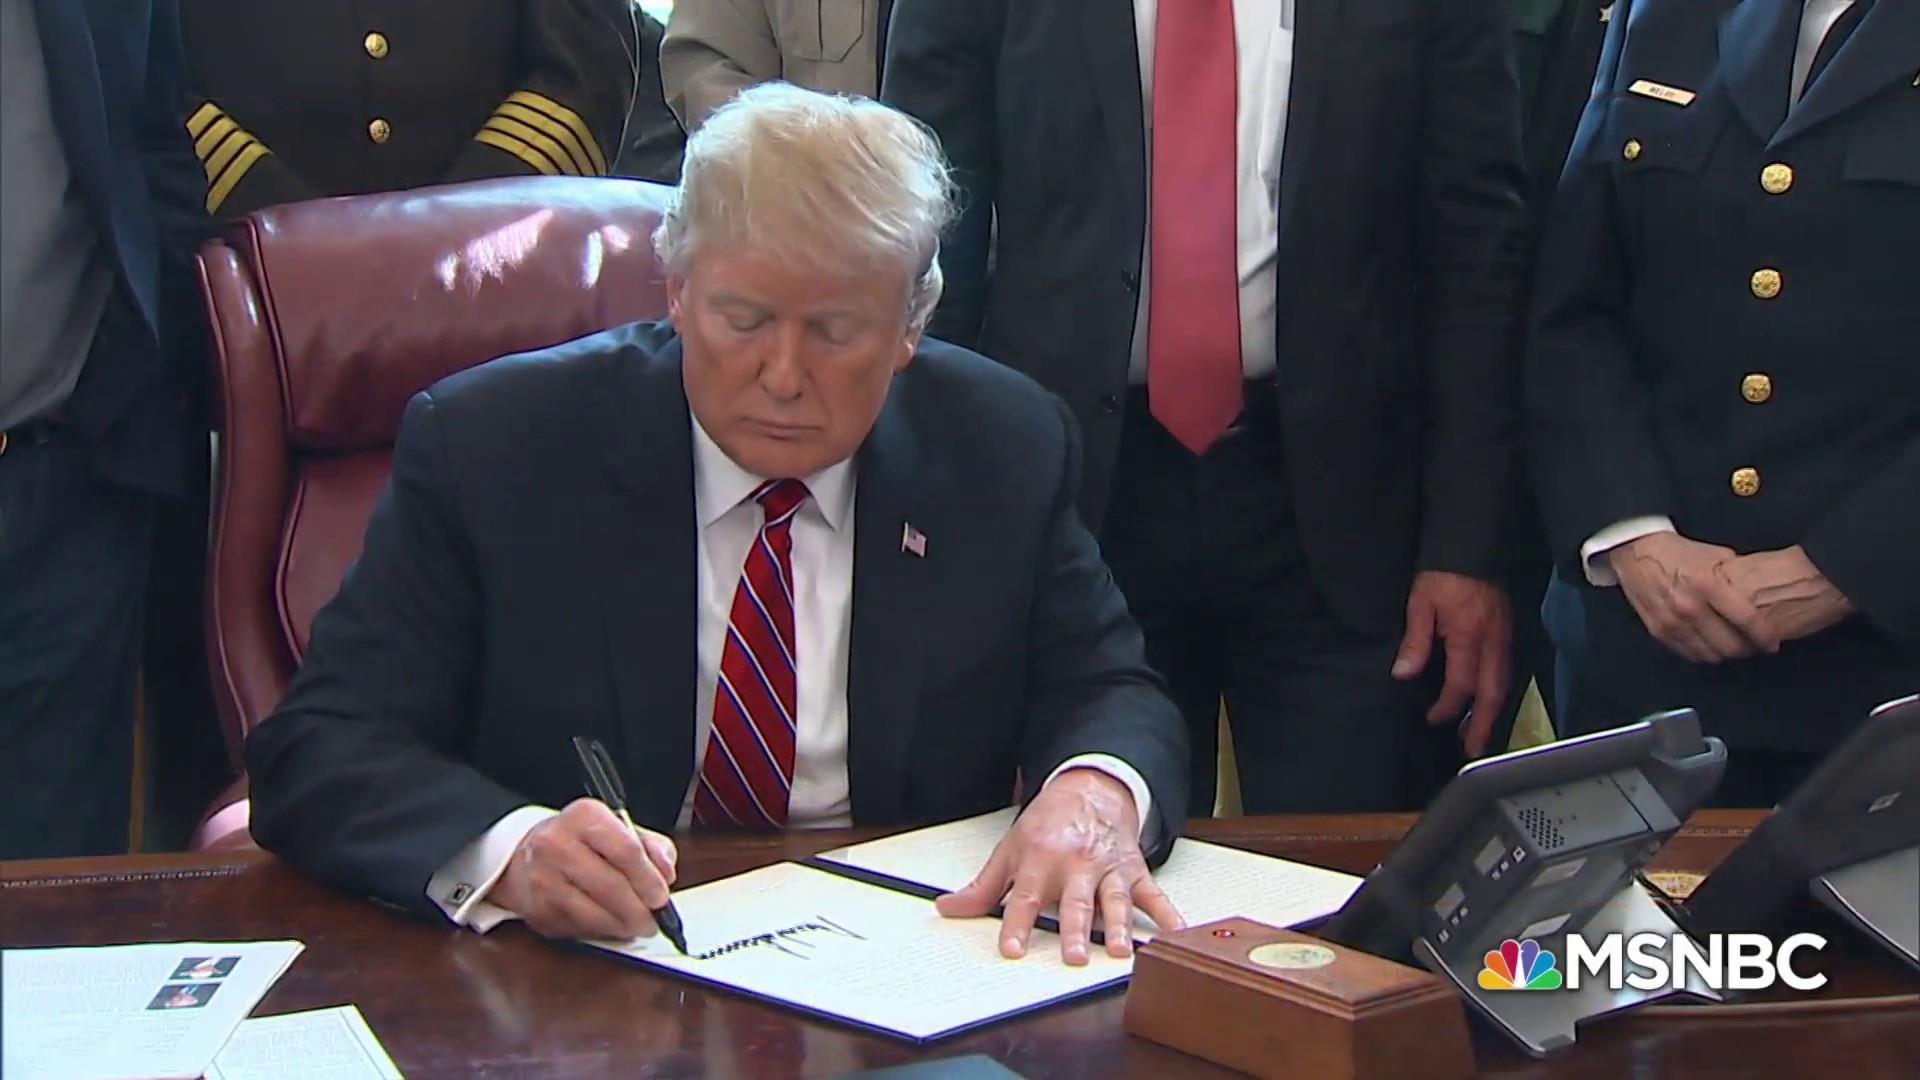 Trump signs his first veto over his border wall, the cornerstone of his political brand